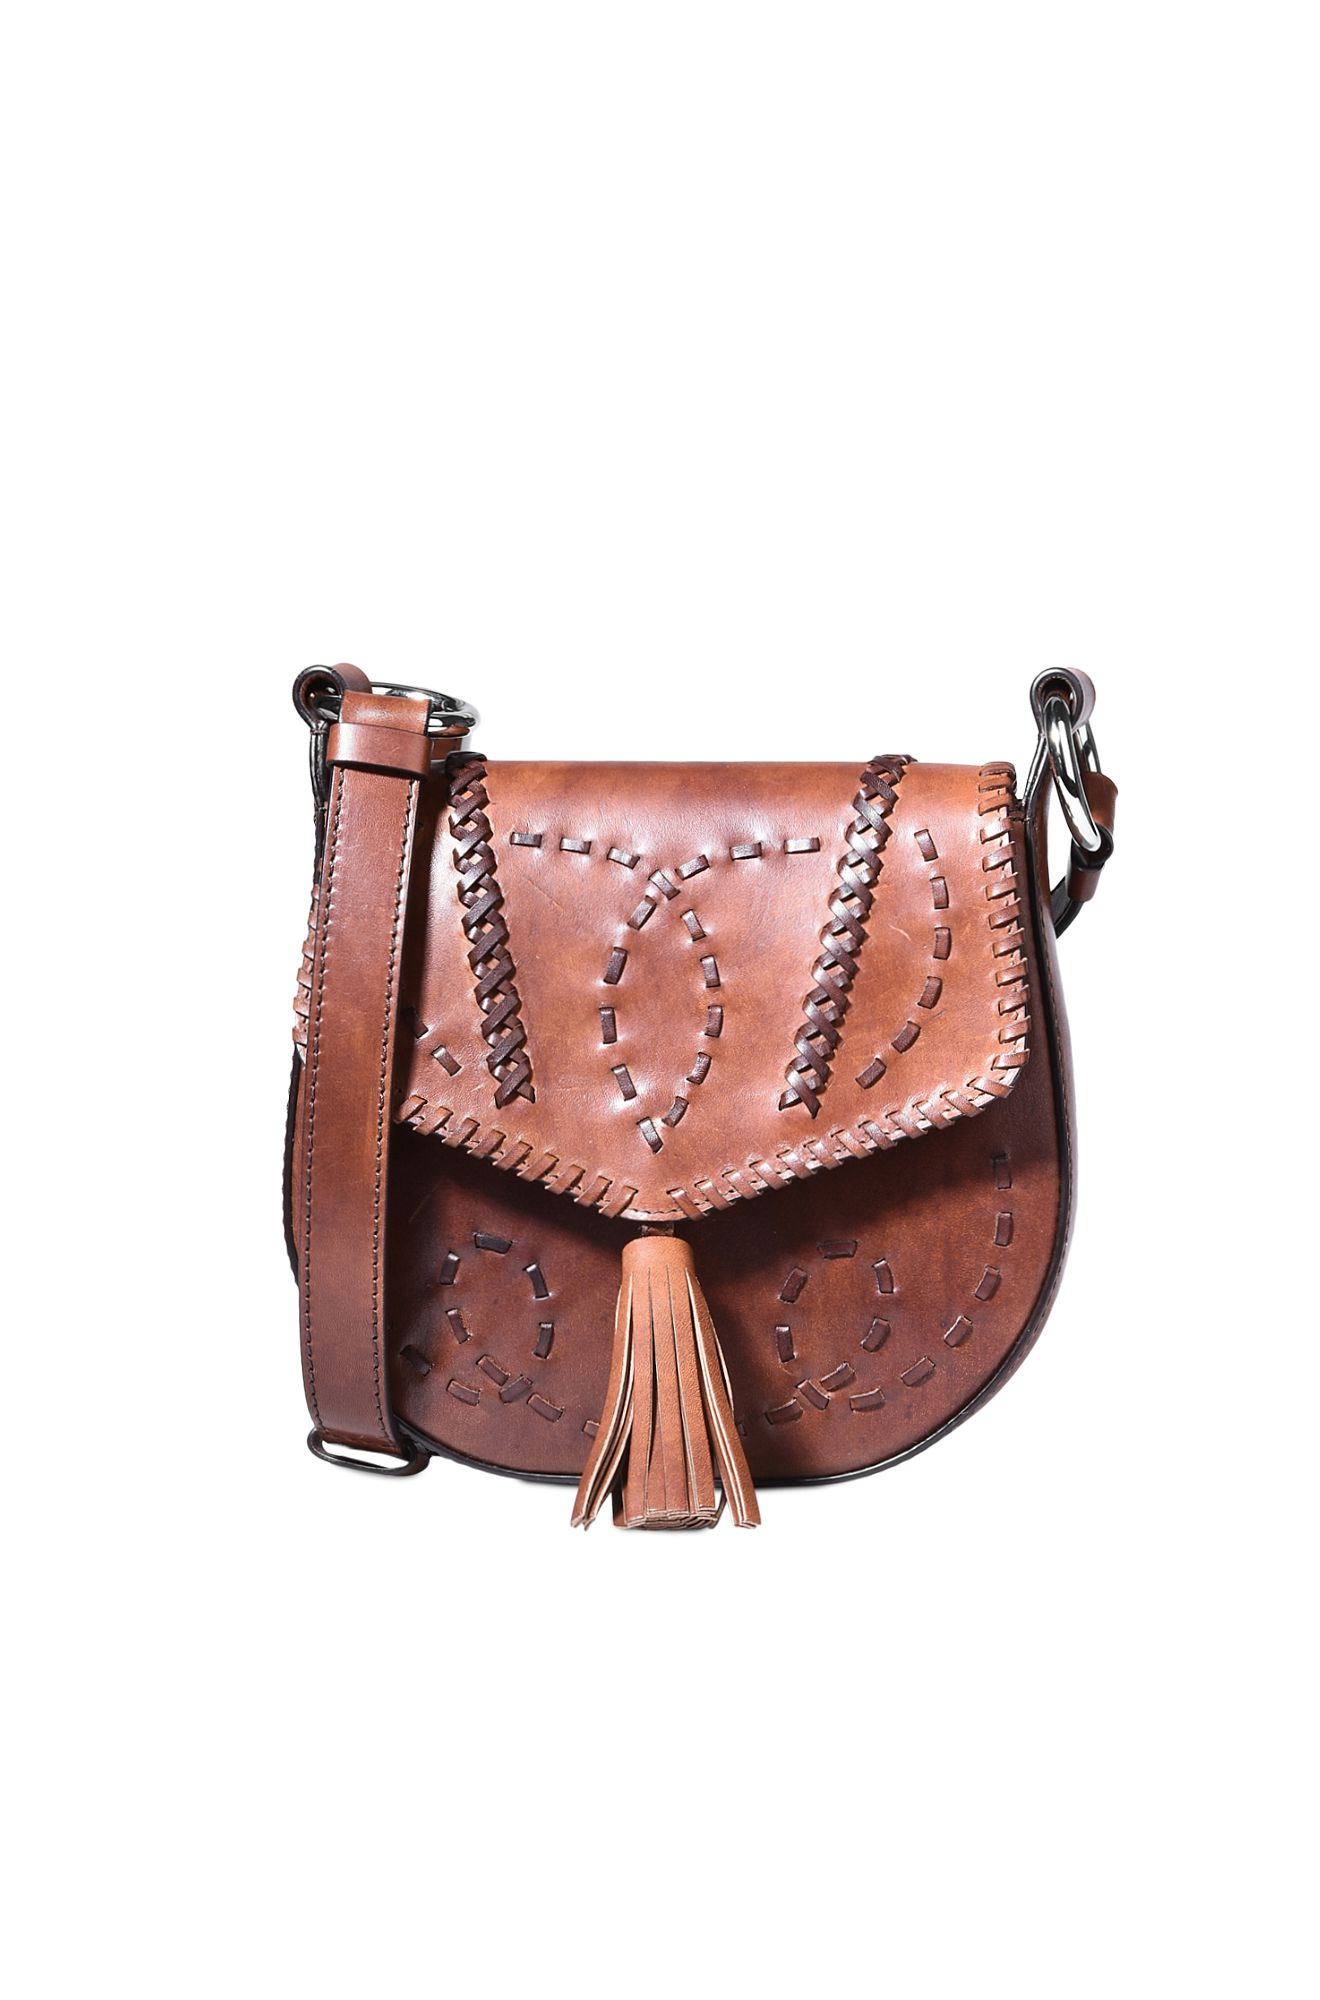 TASSEL LEATHER BAG